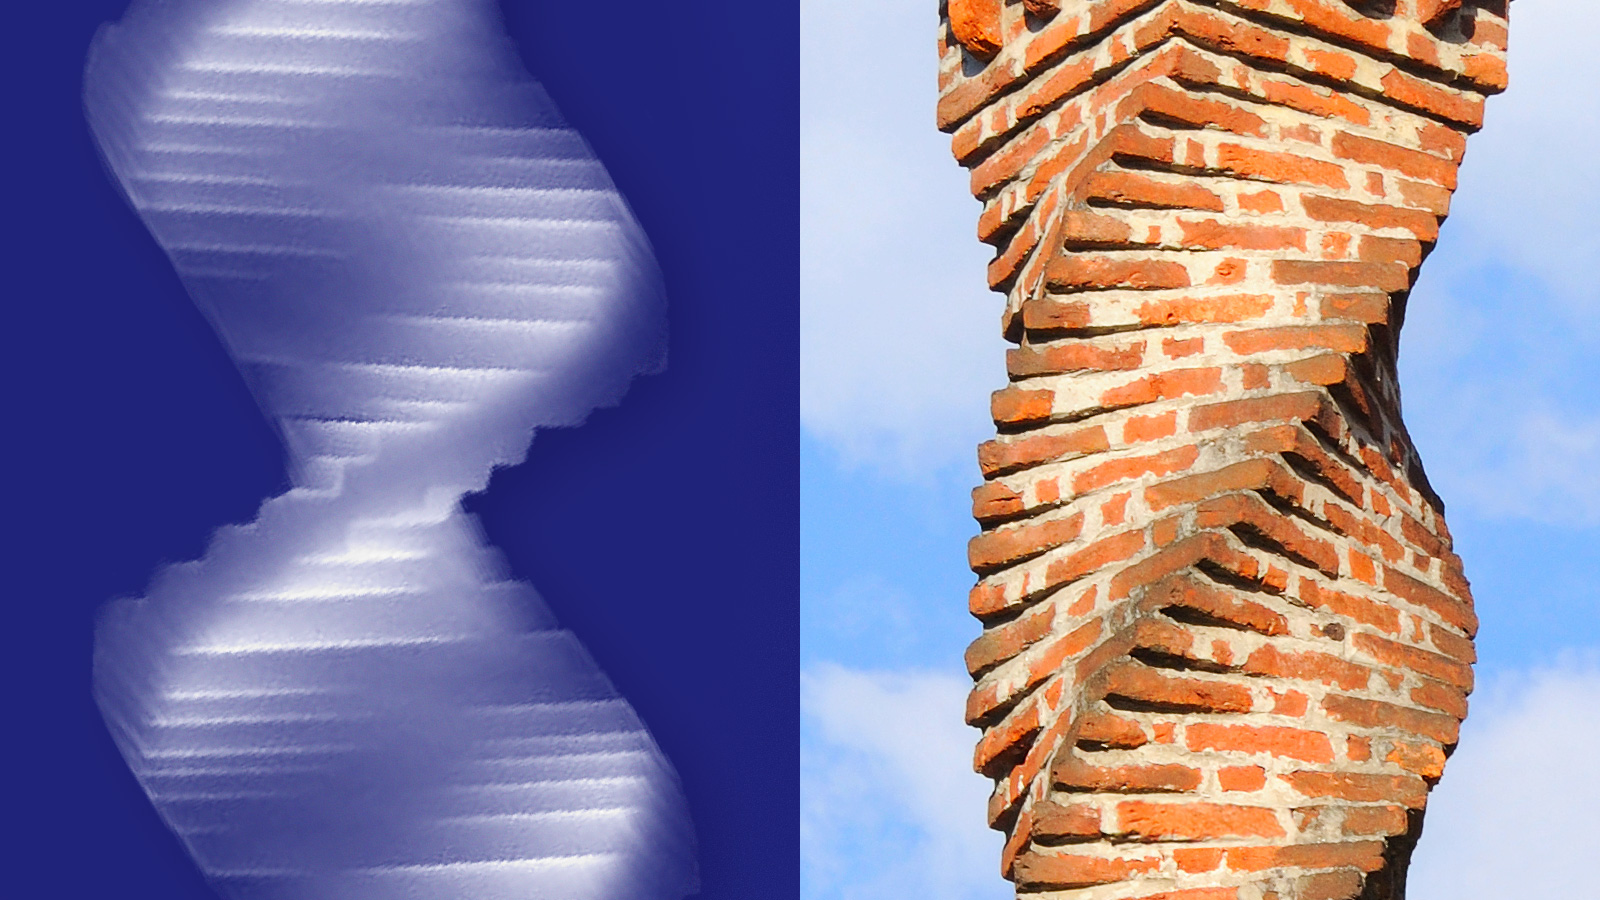 Helical structure of stacked bricks is similar to that produced by giving nanowires an Eshelby twist.